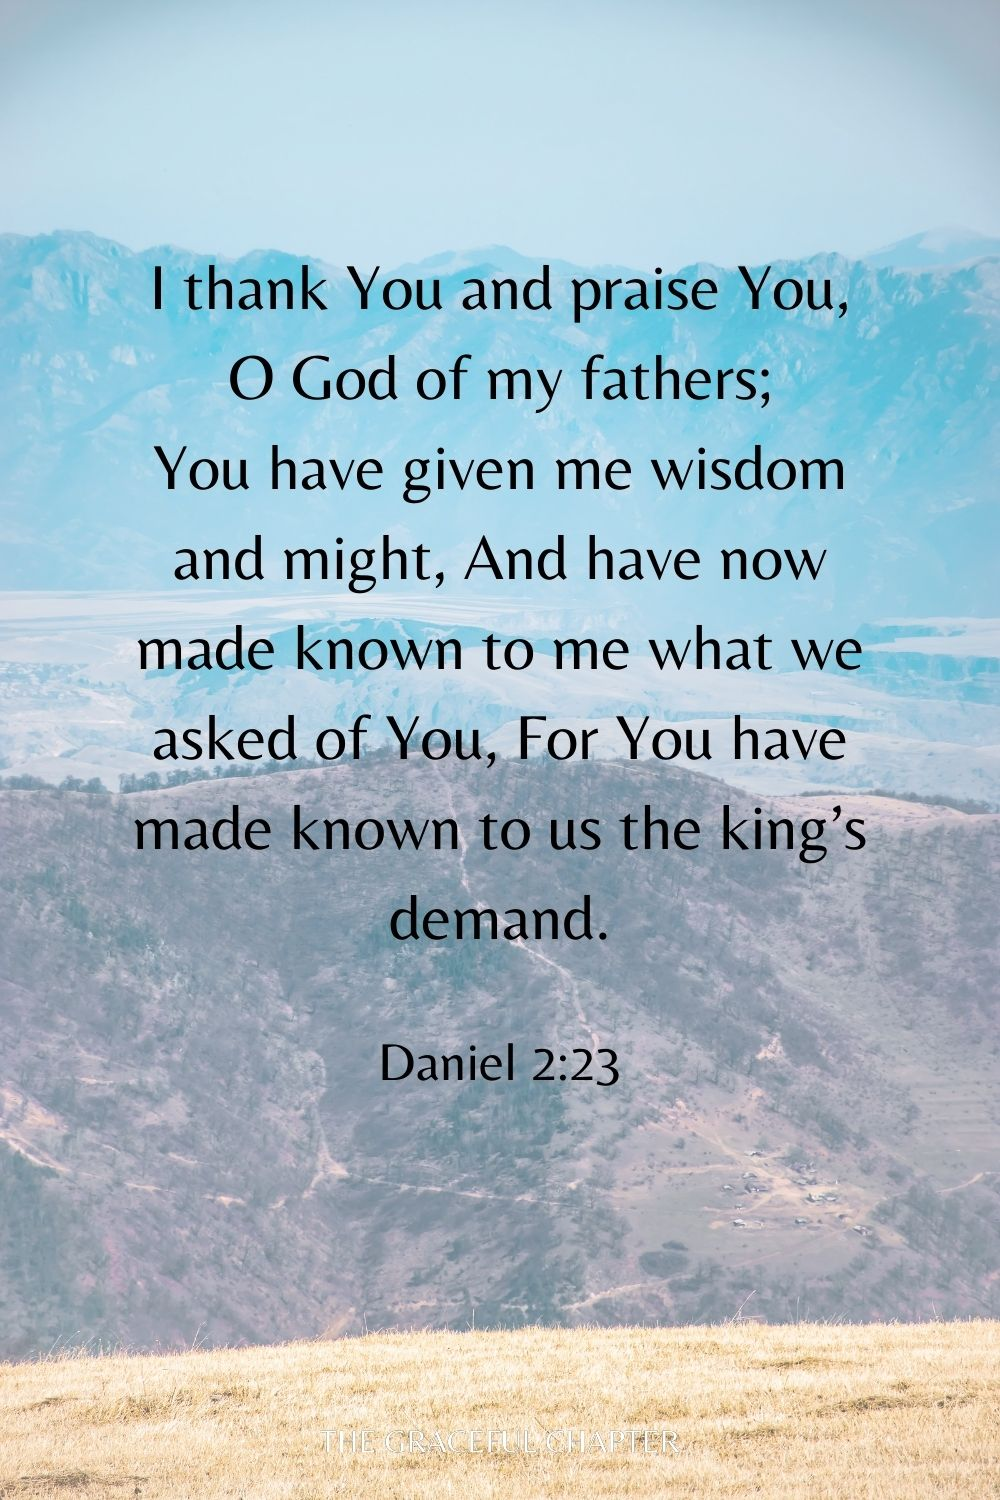 I thank You and praise You, O God of my fathers; You have given me wisdom and might, And have now made known to me what we asked of You, For You have made known to us the king's demand. Daniel 2:23